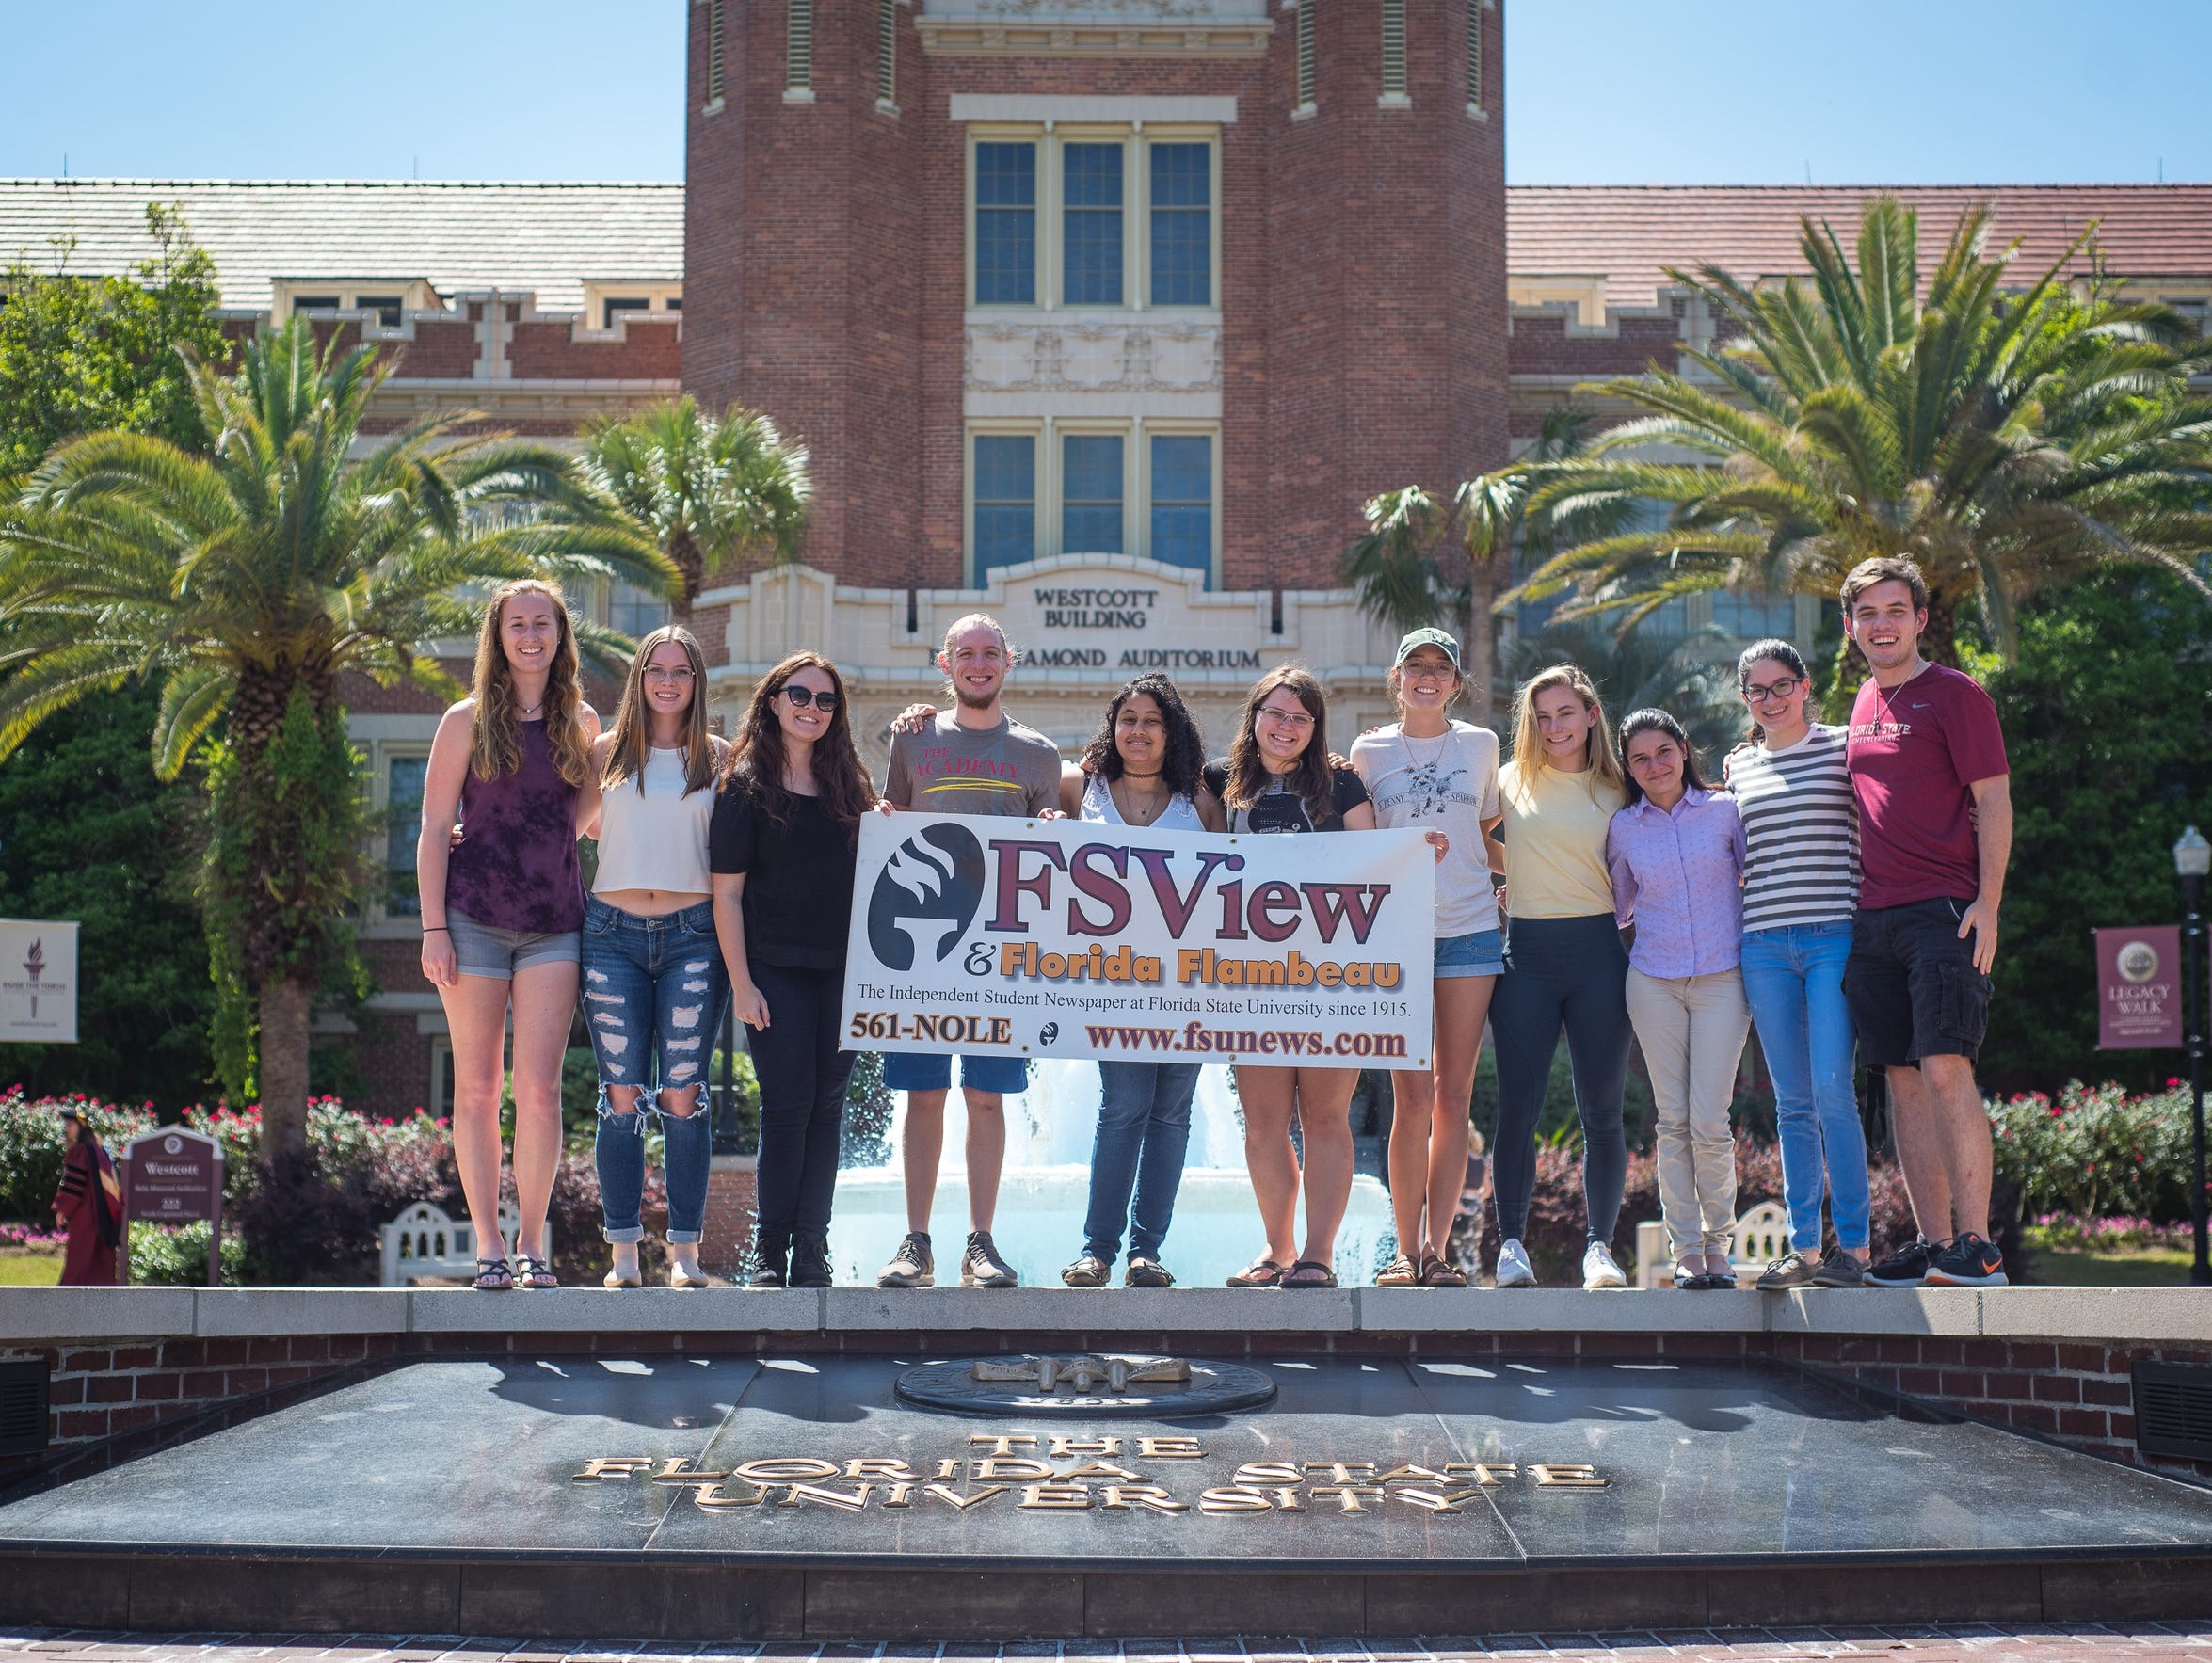 The FSView crew outside of the iconic Westcott building.